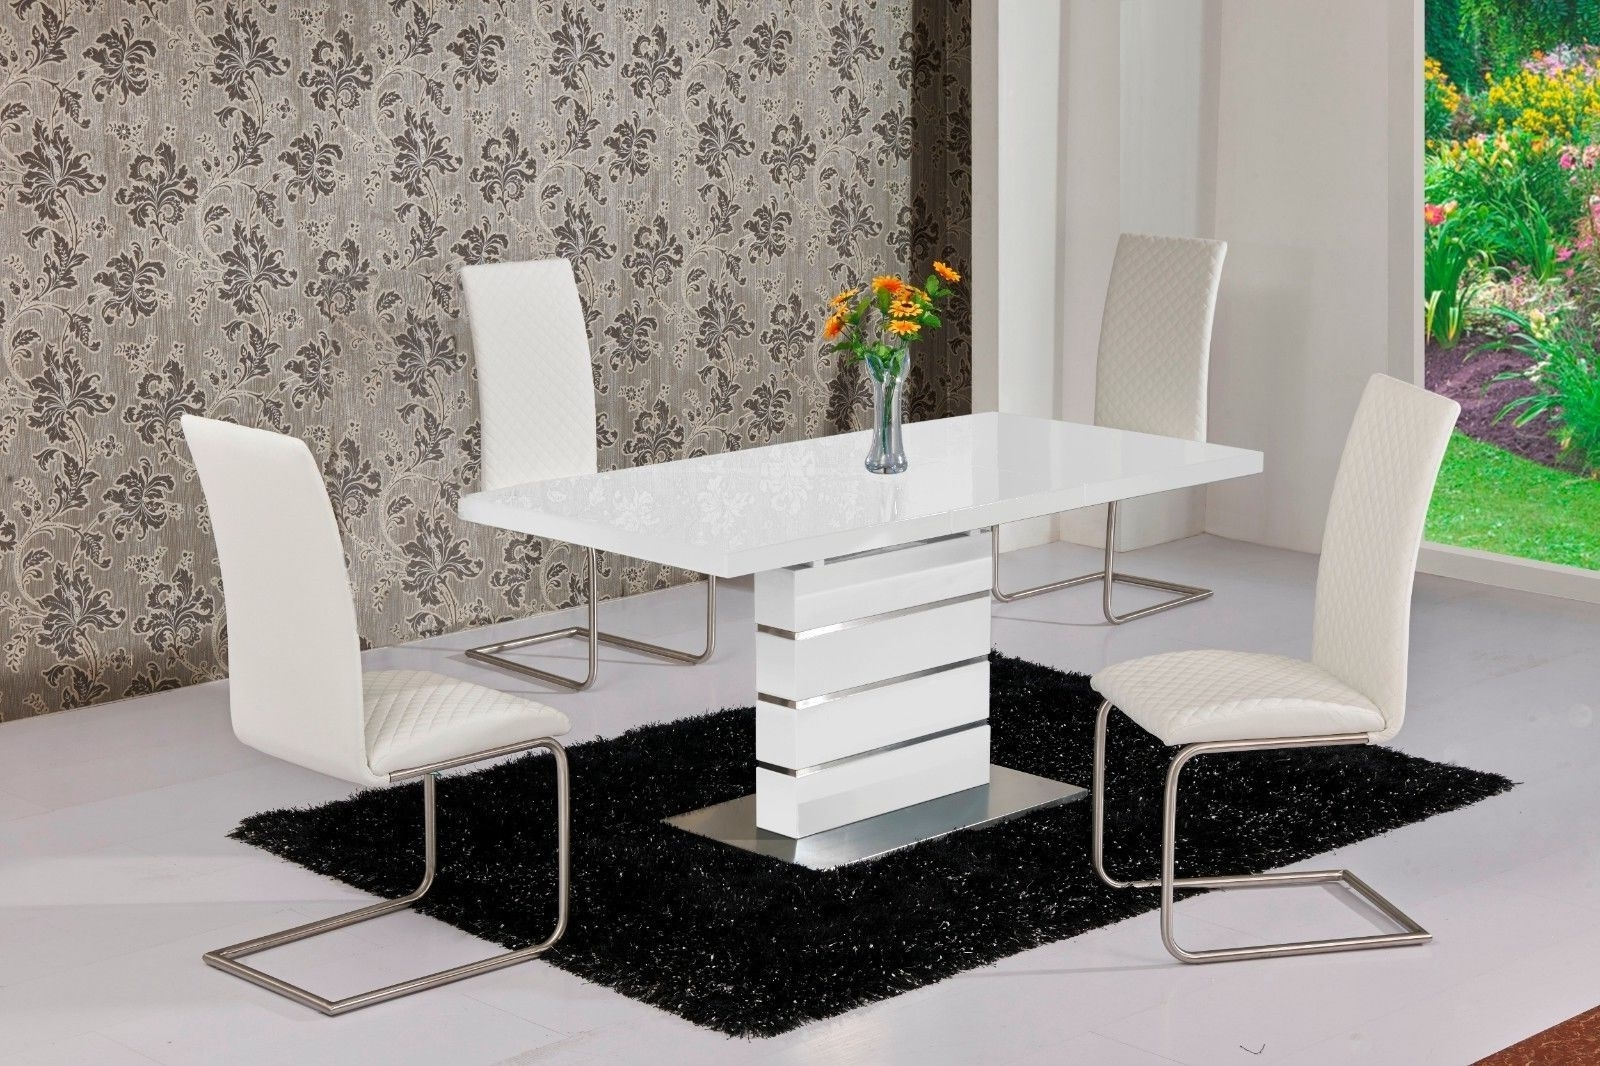 Mace High Gloss Extending 120 160 Dining Table & Chair Set – White With Regard To Recent High Gloss Round Dining Tables (View 15 of 25)